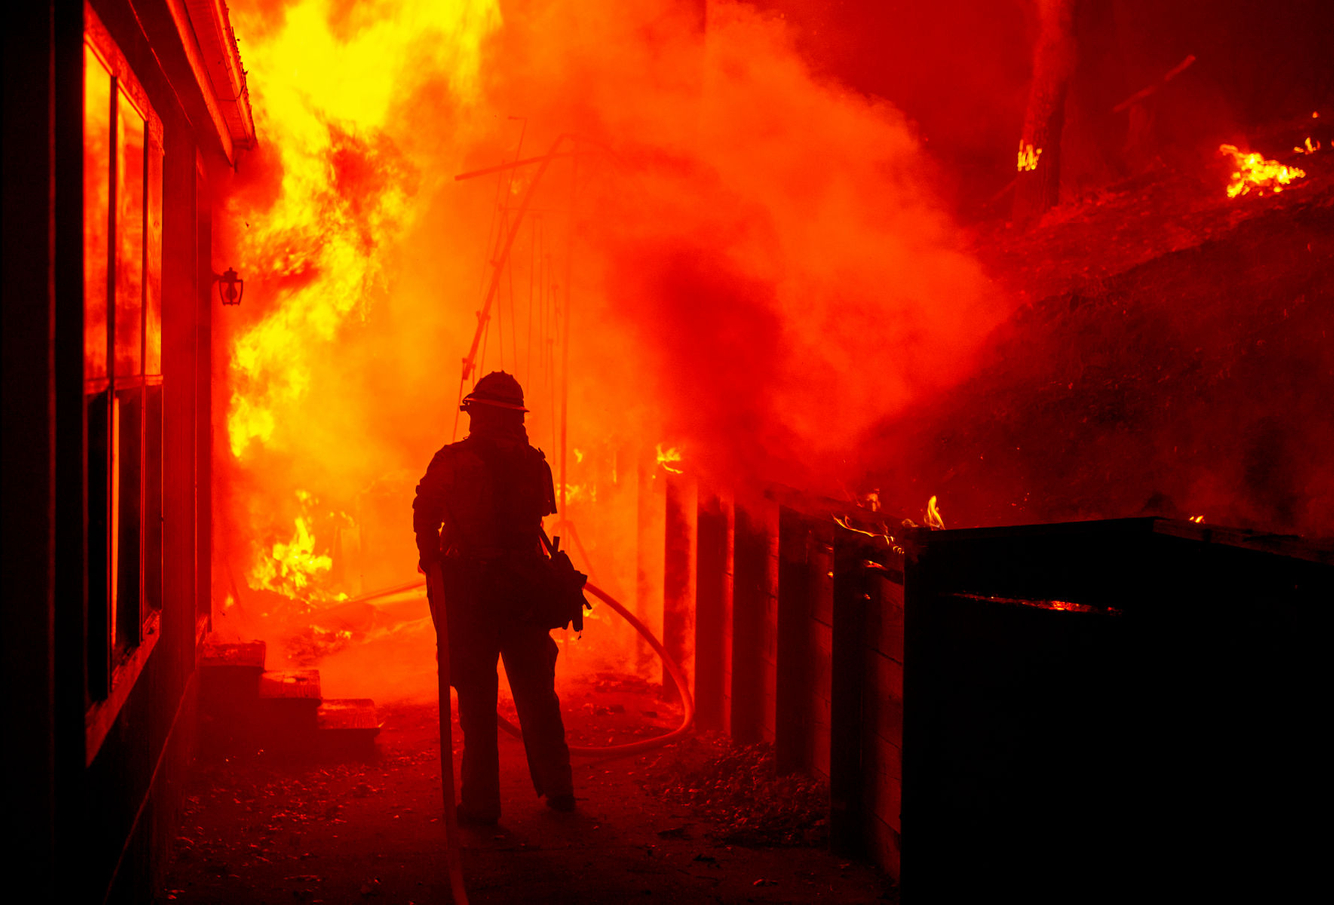 A firefighter attempts to save a burning home during the Valley fire.